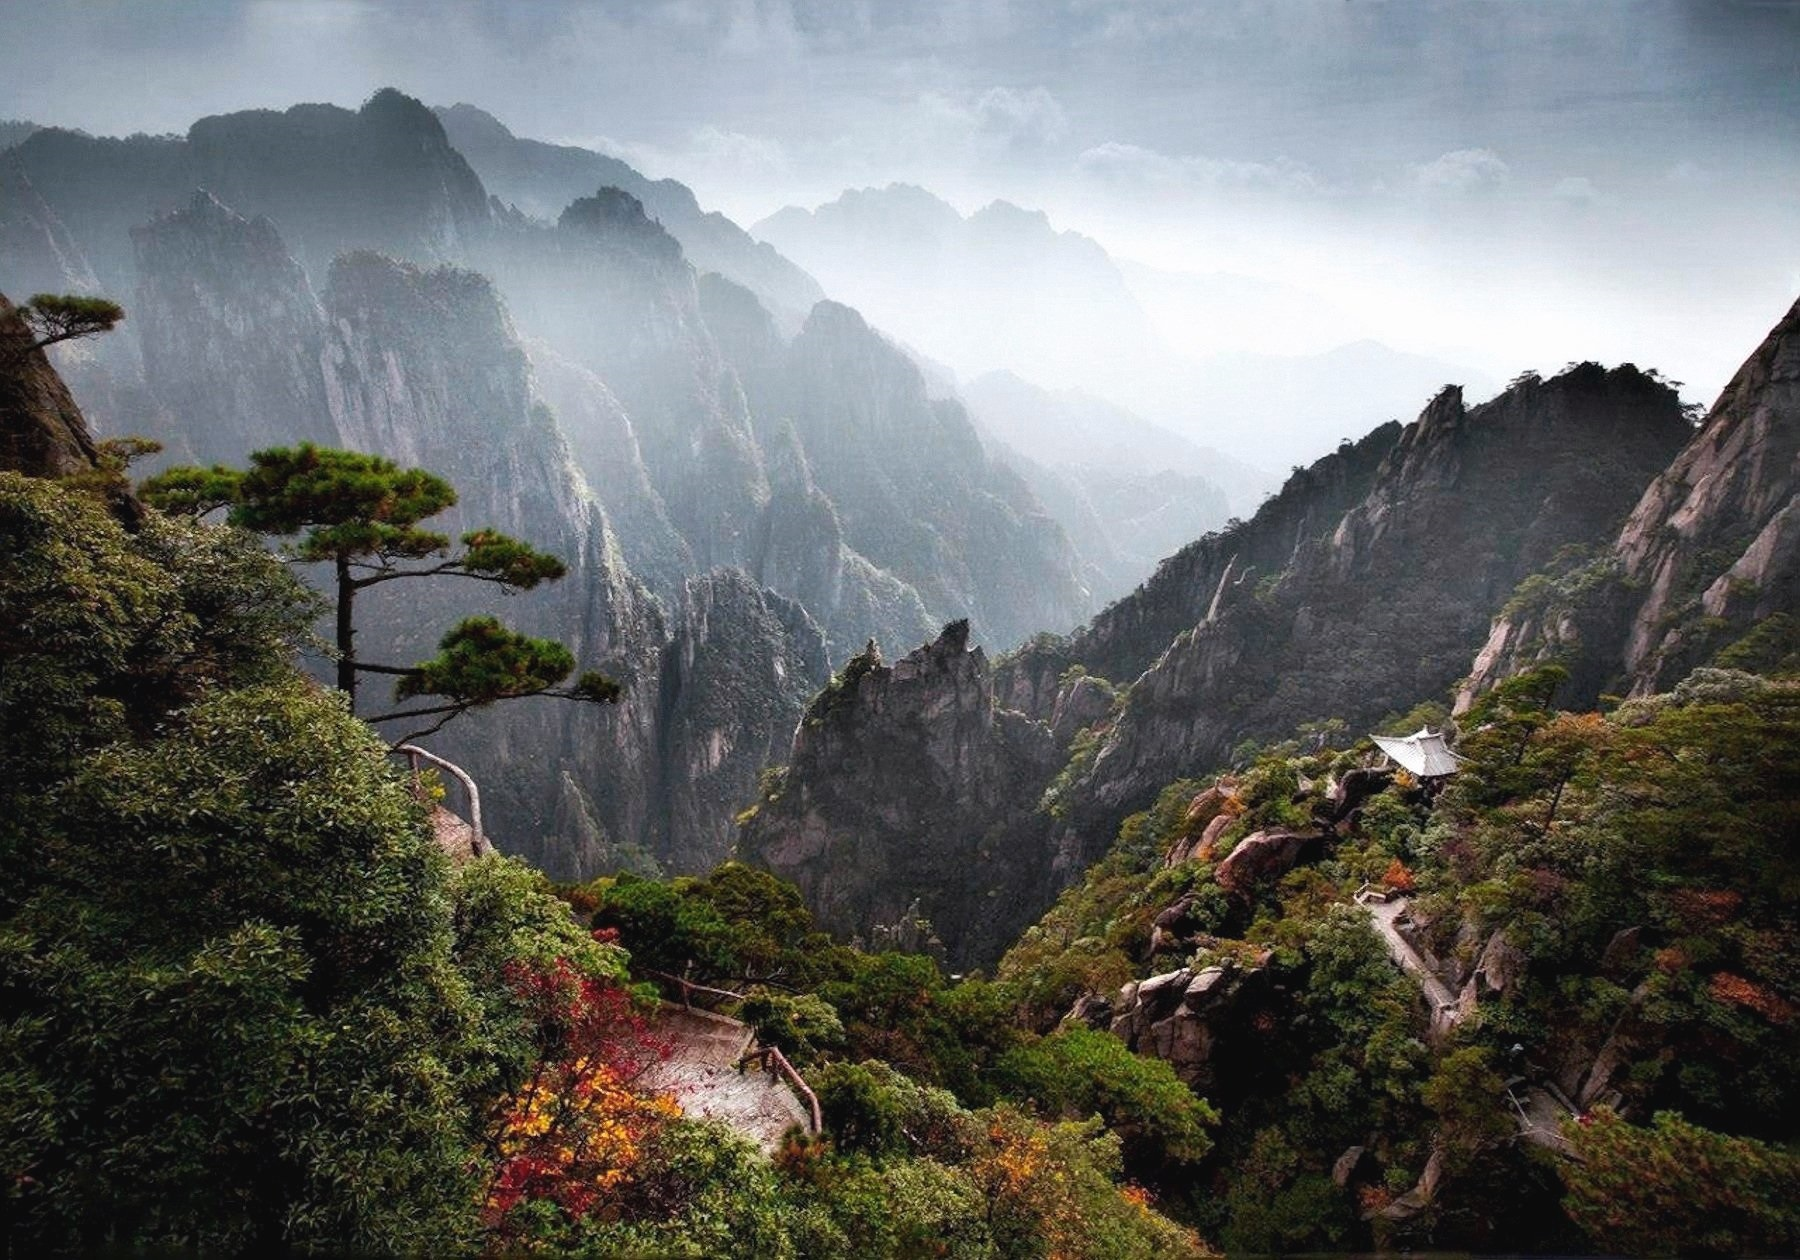 00 Mikhail Vorobyov. The mountain chain of Huangshan, China. 2015